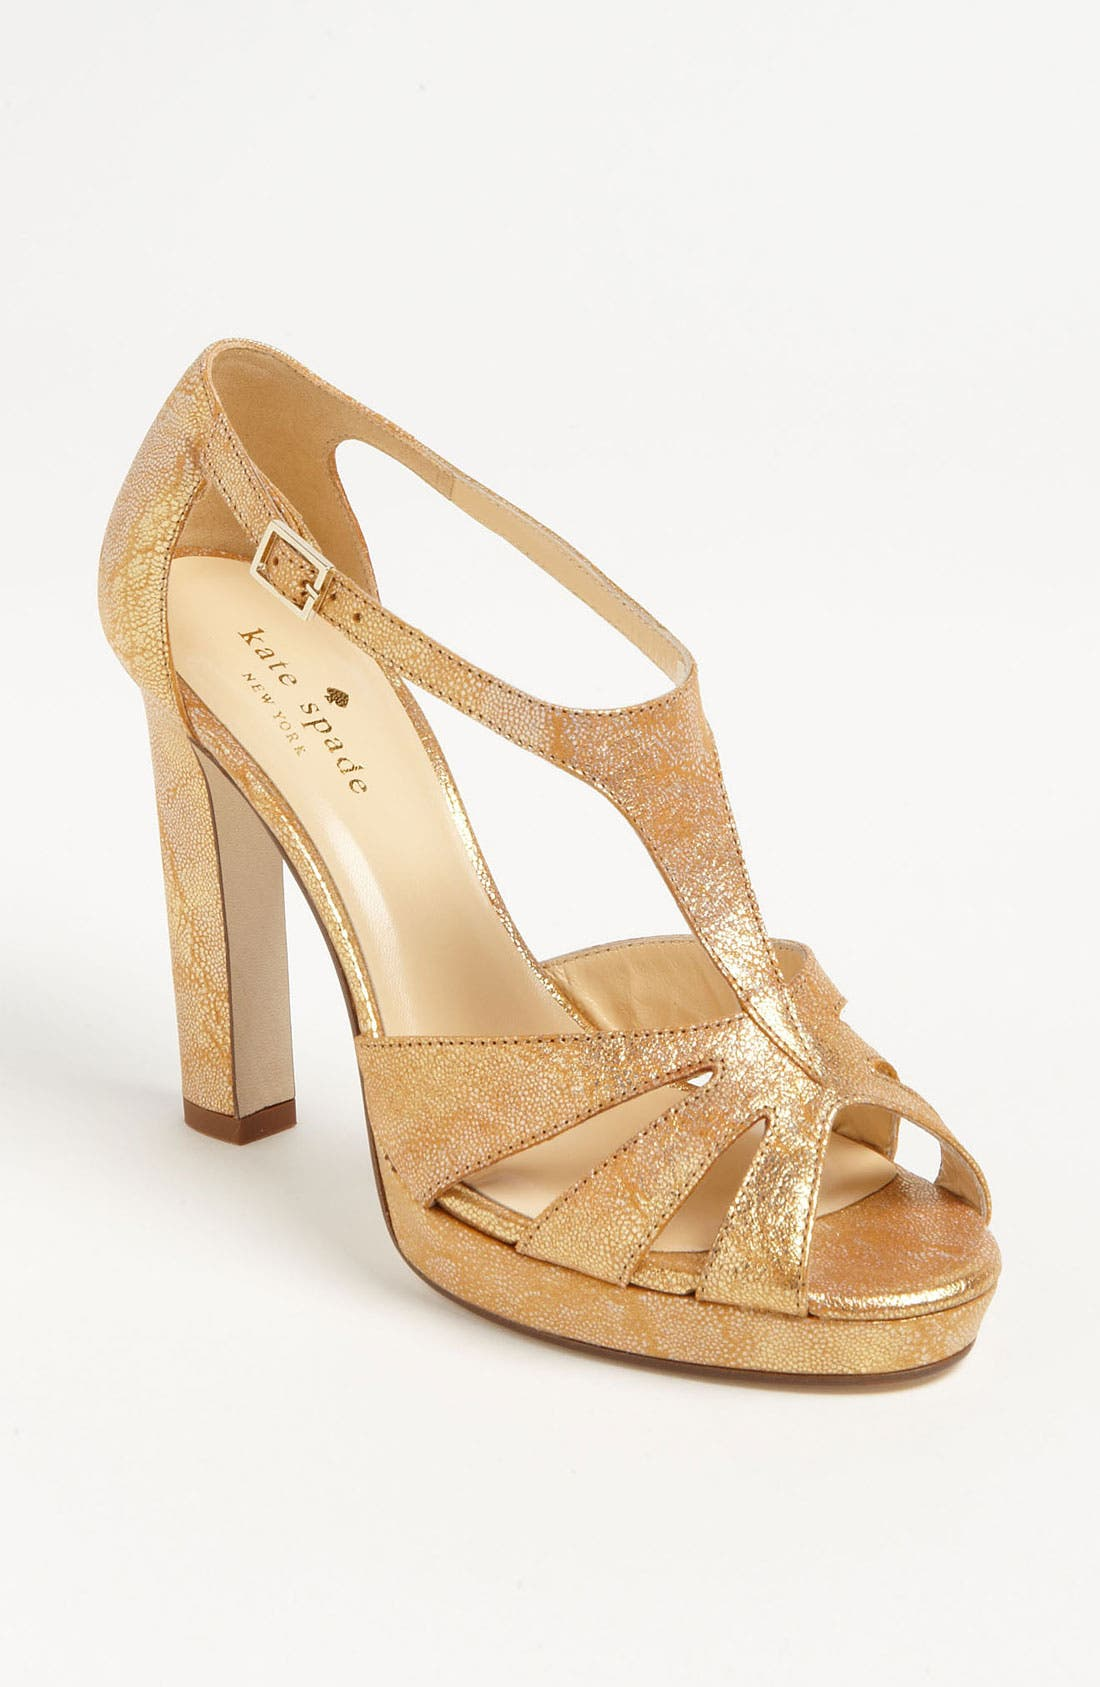 Main Image - kate spade new york 'ria' sandal